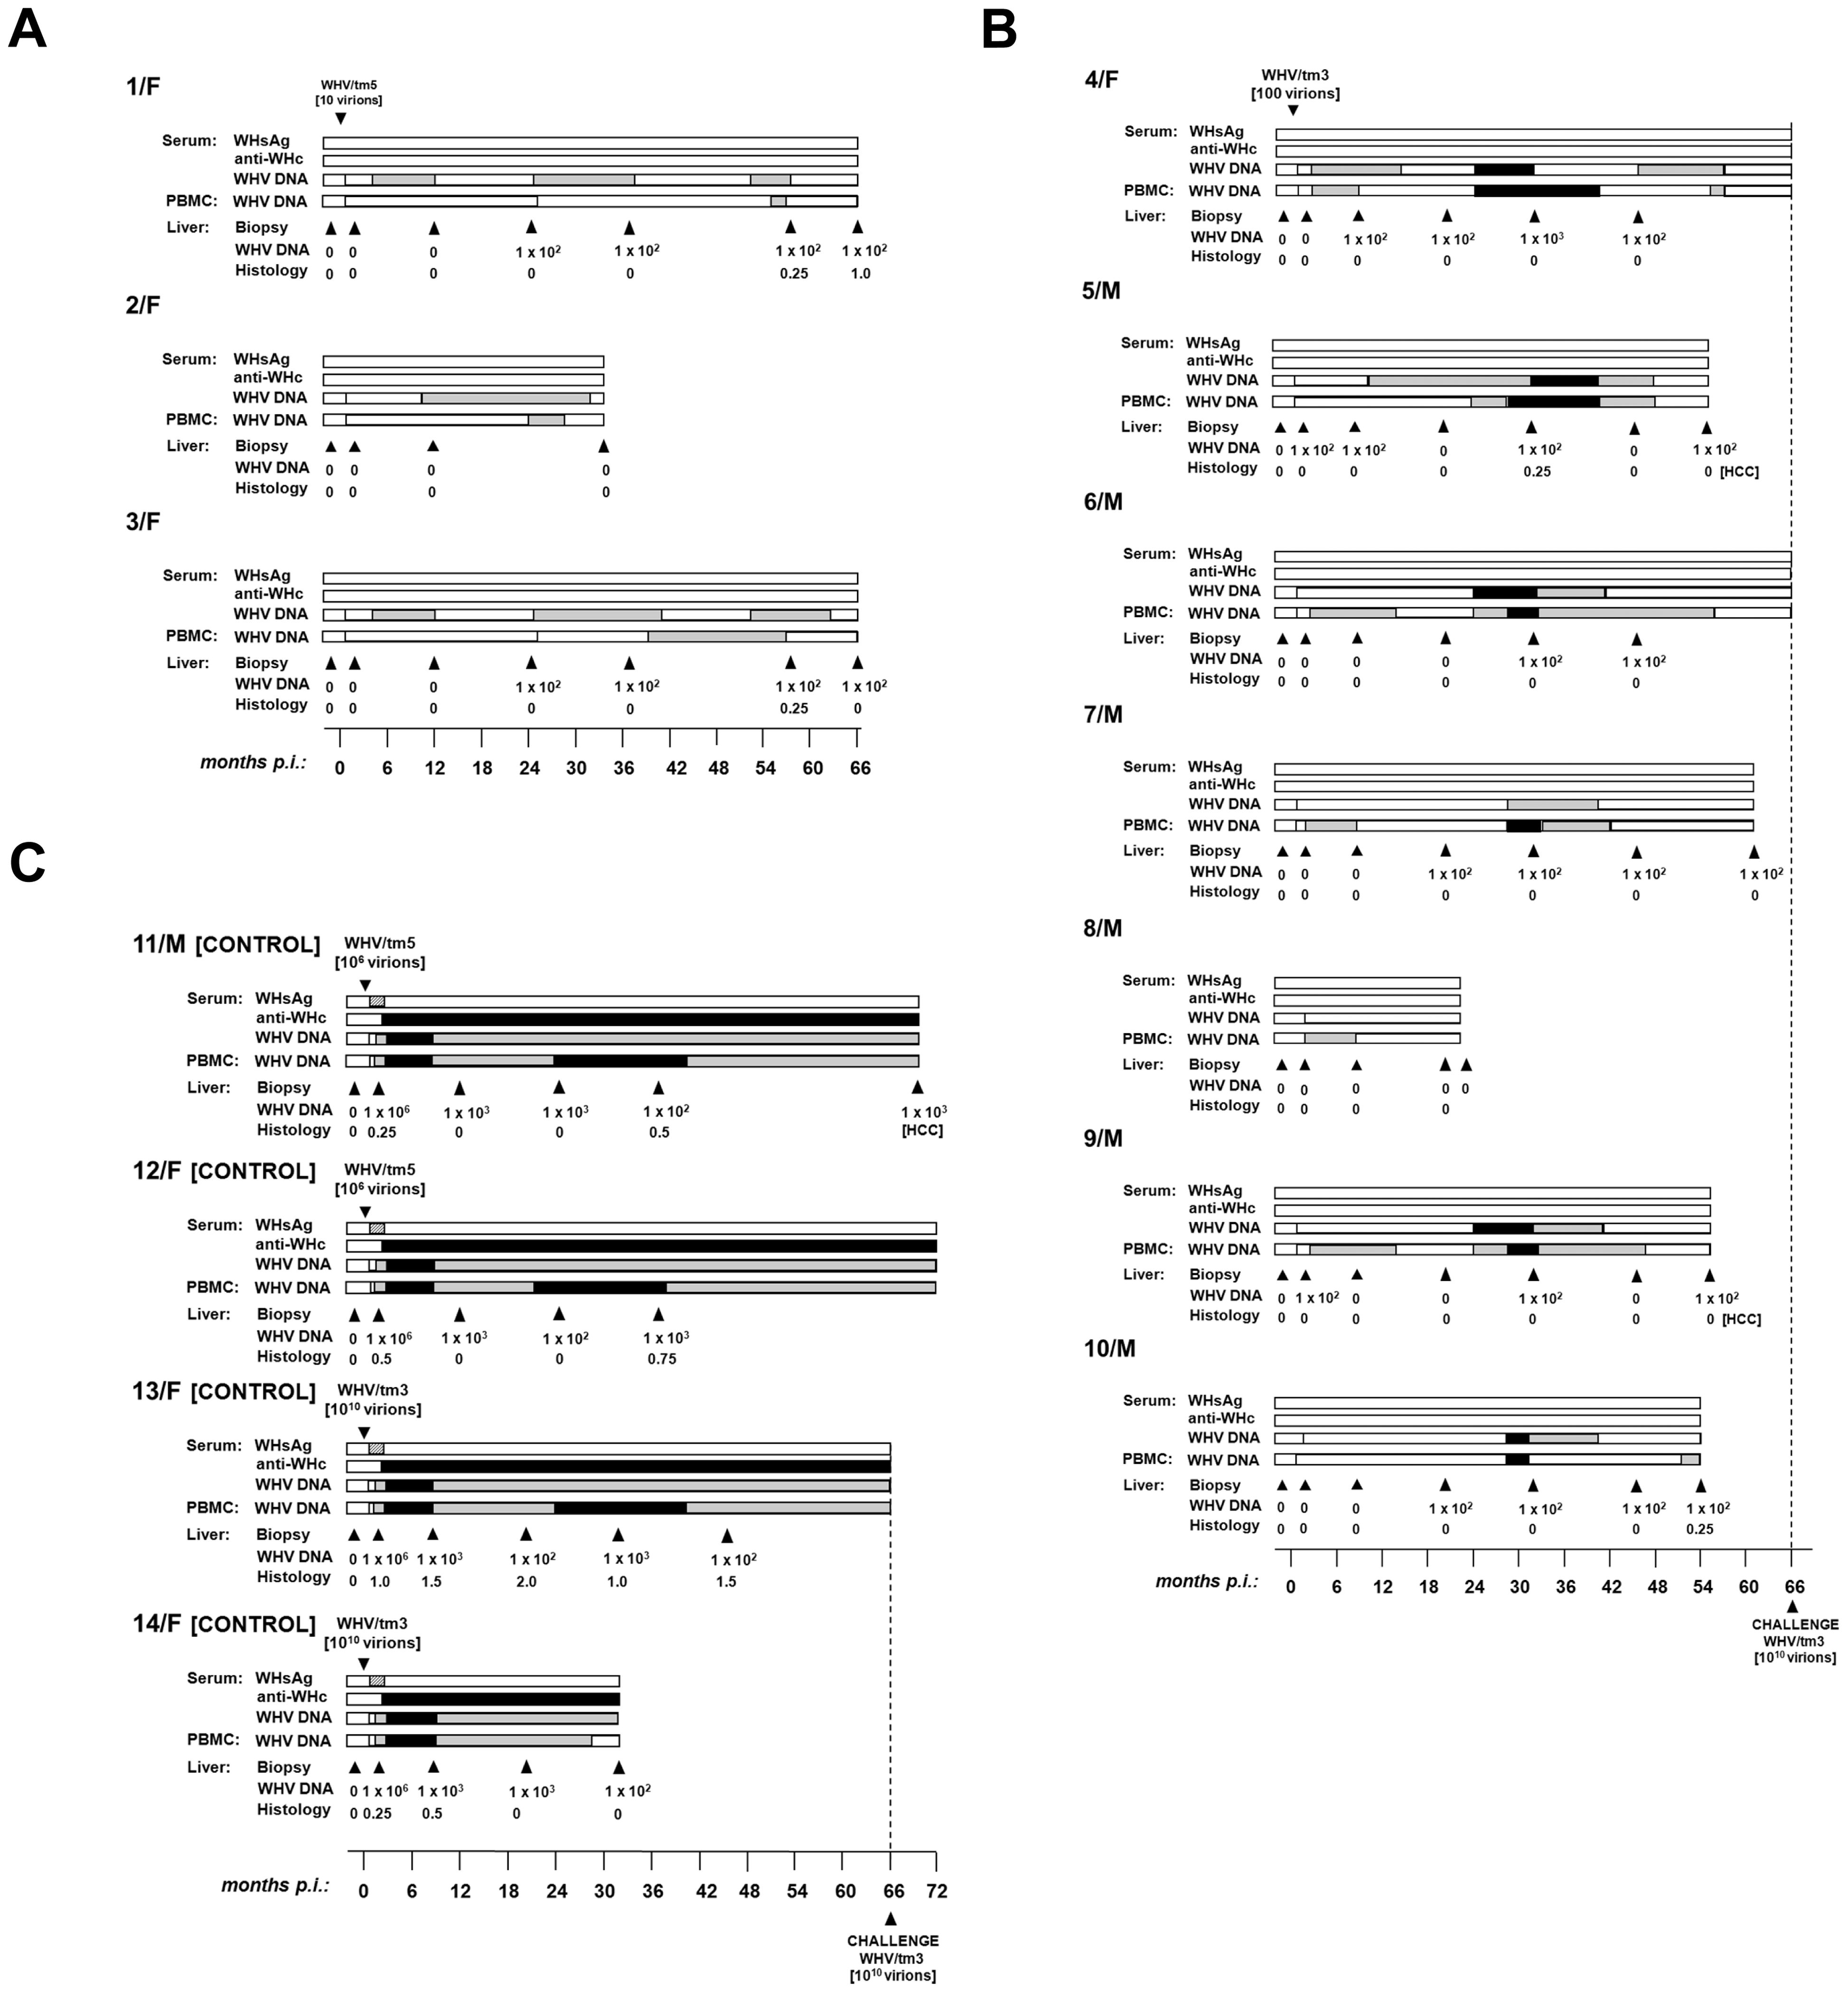 Lifelong profiles of serological markers of WHV infection and WHV DNA detection in serum, PBMC and liver tissue samples, and the results on liver histology in woodchucks injected with a single dose of 10 WHV/tm5 or 100 WHV/tm3 virions and in control animals infected with a liver pathogenic dose of 10<sup>6</sup> or 10<sup>10</sup> virions of the same inocula, respectively.